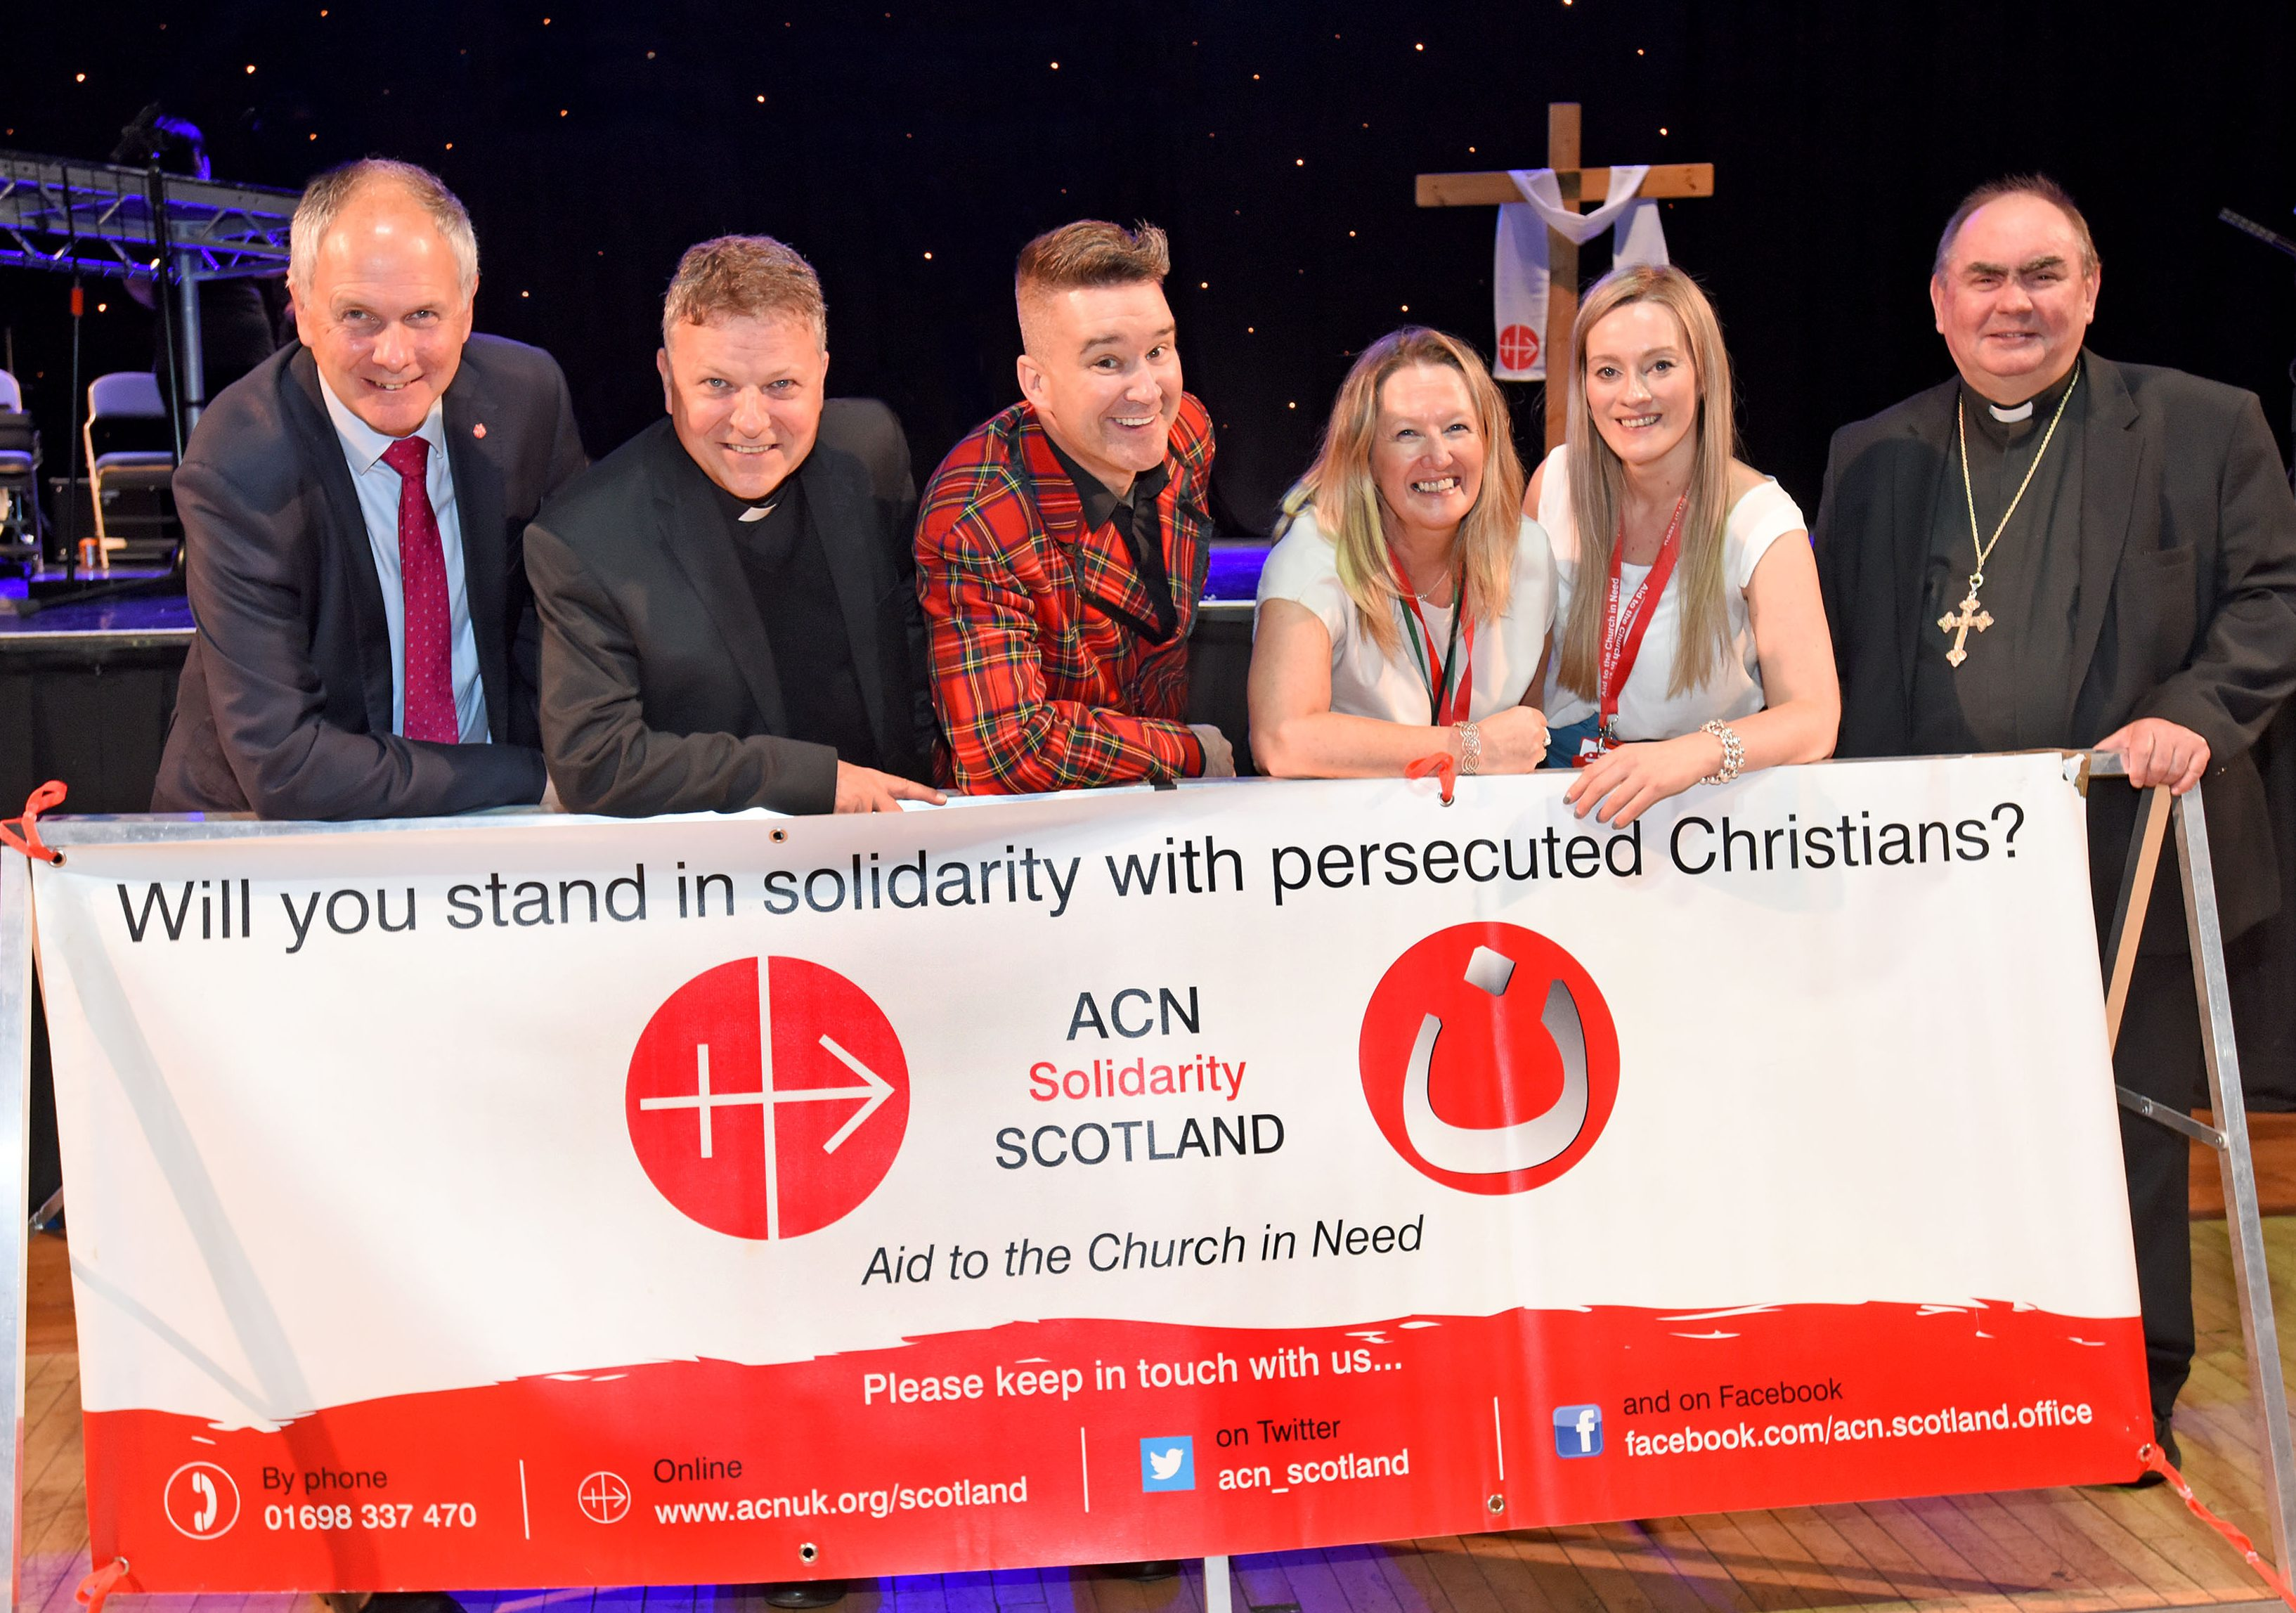 Scotland annual ACN event (from left) ACN UK National Director Neville Kyrke-Smith; Bishop John Keenan of Paisley; DJ Steve McKenna; Lorraine McMahon, ACN Head of Operations in Scotland; Clair Sweeney, ACN Schools and Events Coordinator in Scotland and Bishop Joseph Toal of Motherwell (© Paul Mc Sherry - Aid to the Church in Need)